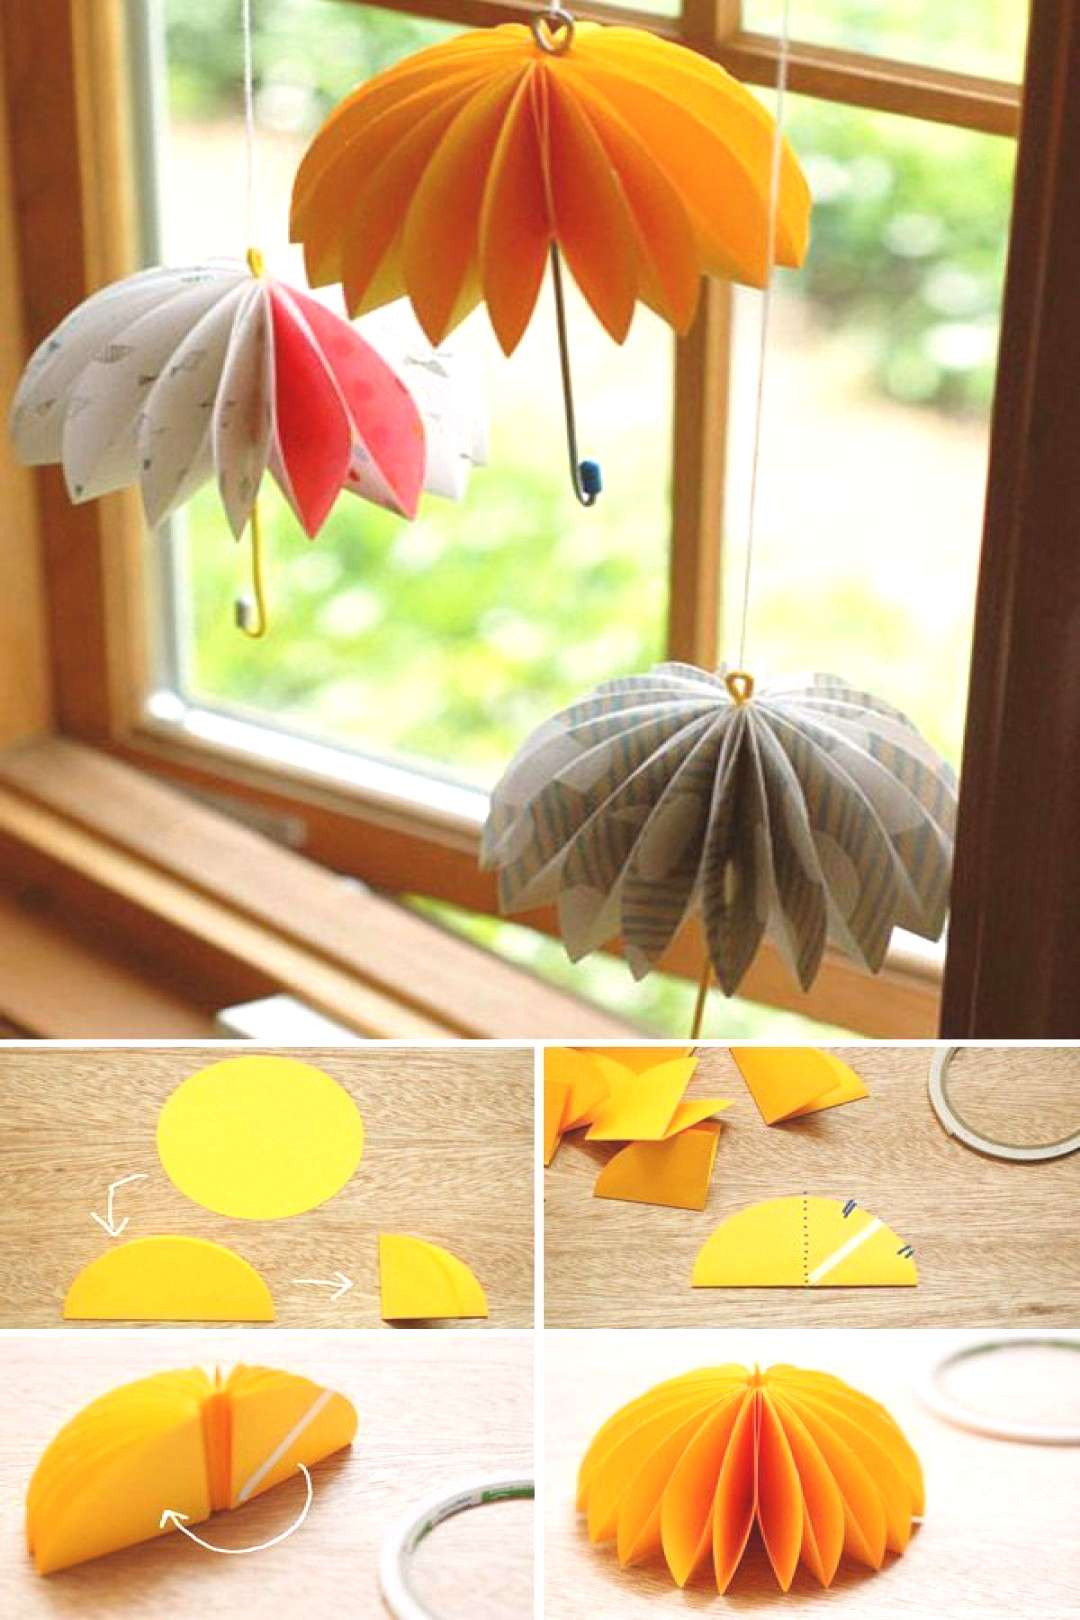 Transform paper circles to hanging umbrellas.